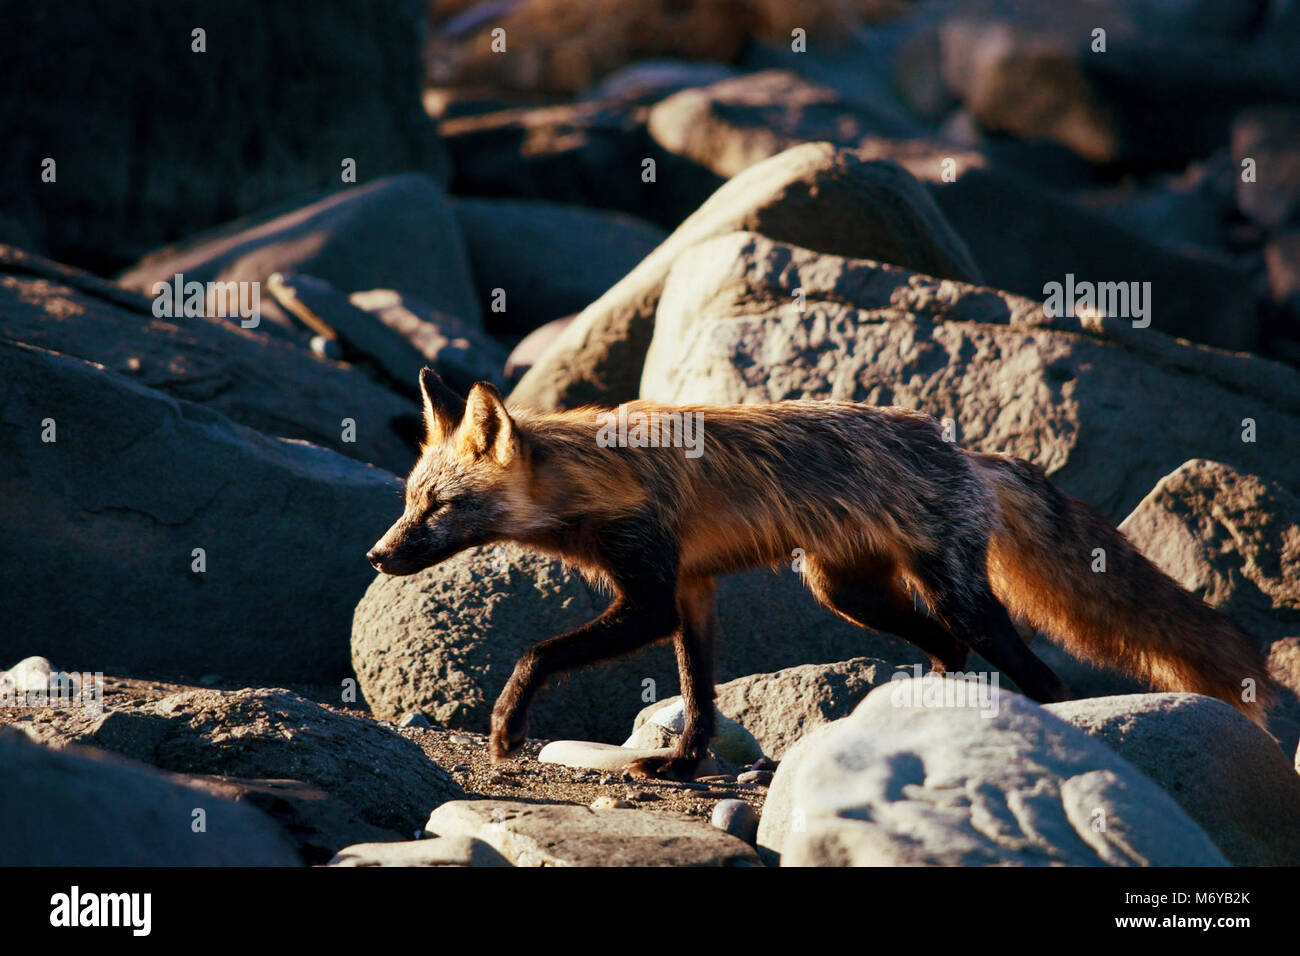 Red Fox (Vulpes vulpes)   . Red foxes can have many color phases including red, cross, silver, and black.  This - Stock Image